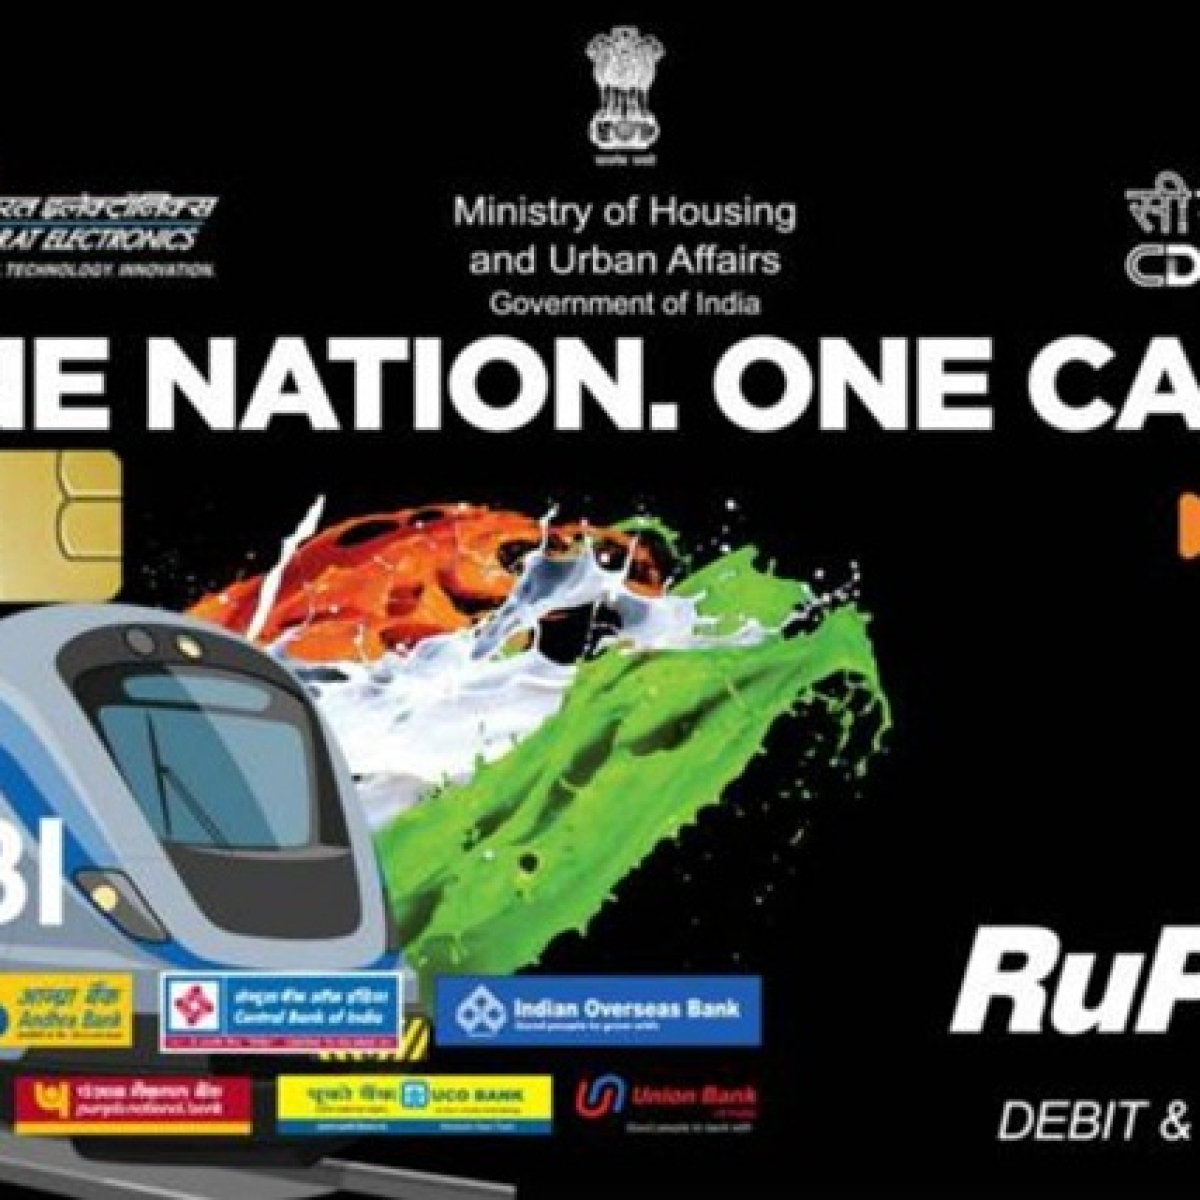 Mumbai local trains likely to get Centre's 'One Nation, One Card' ticket system first